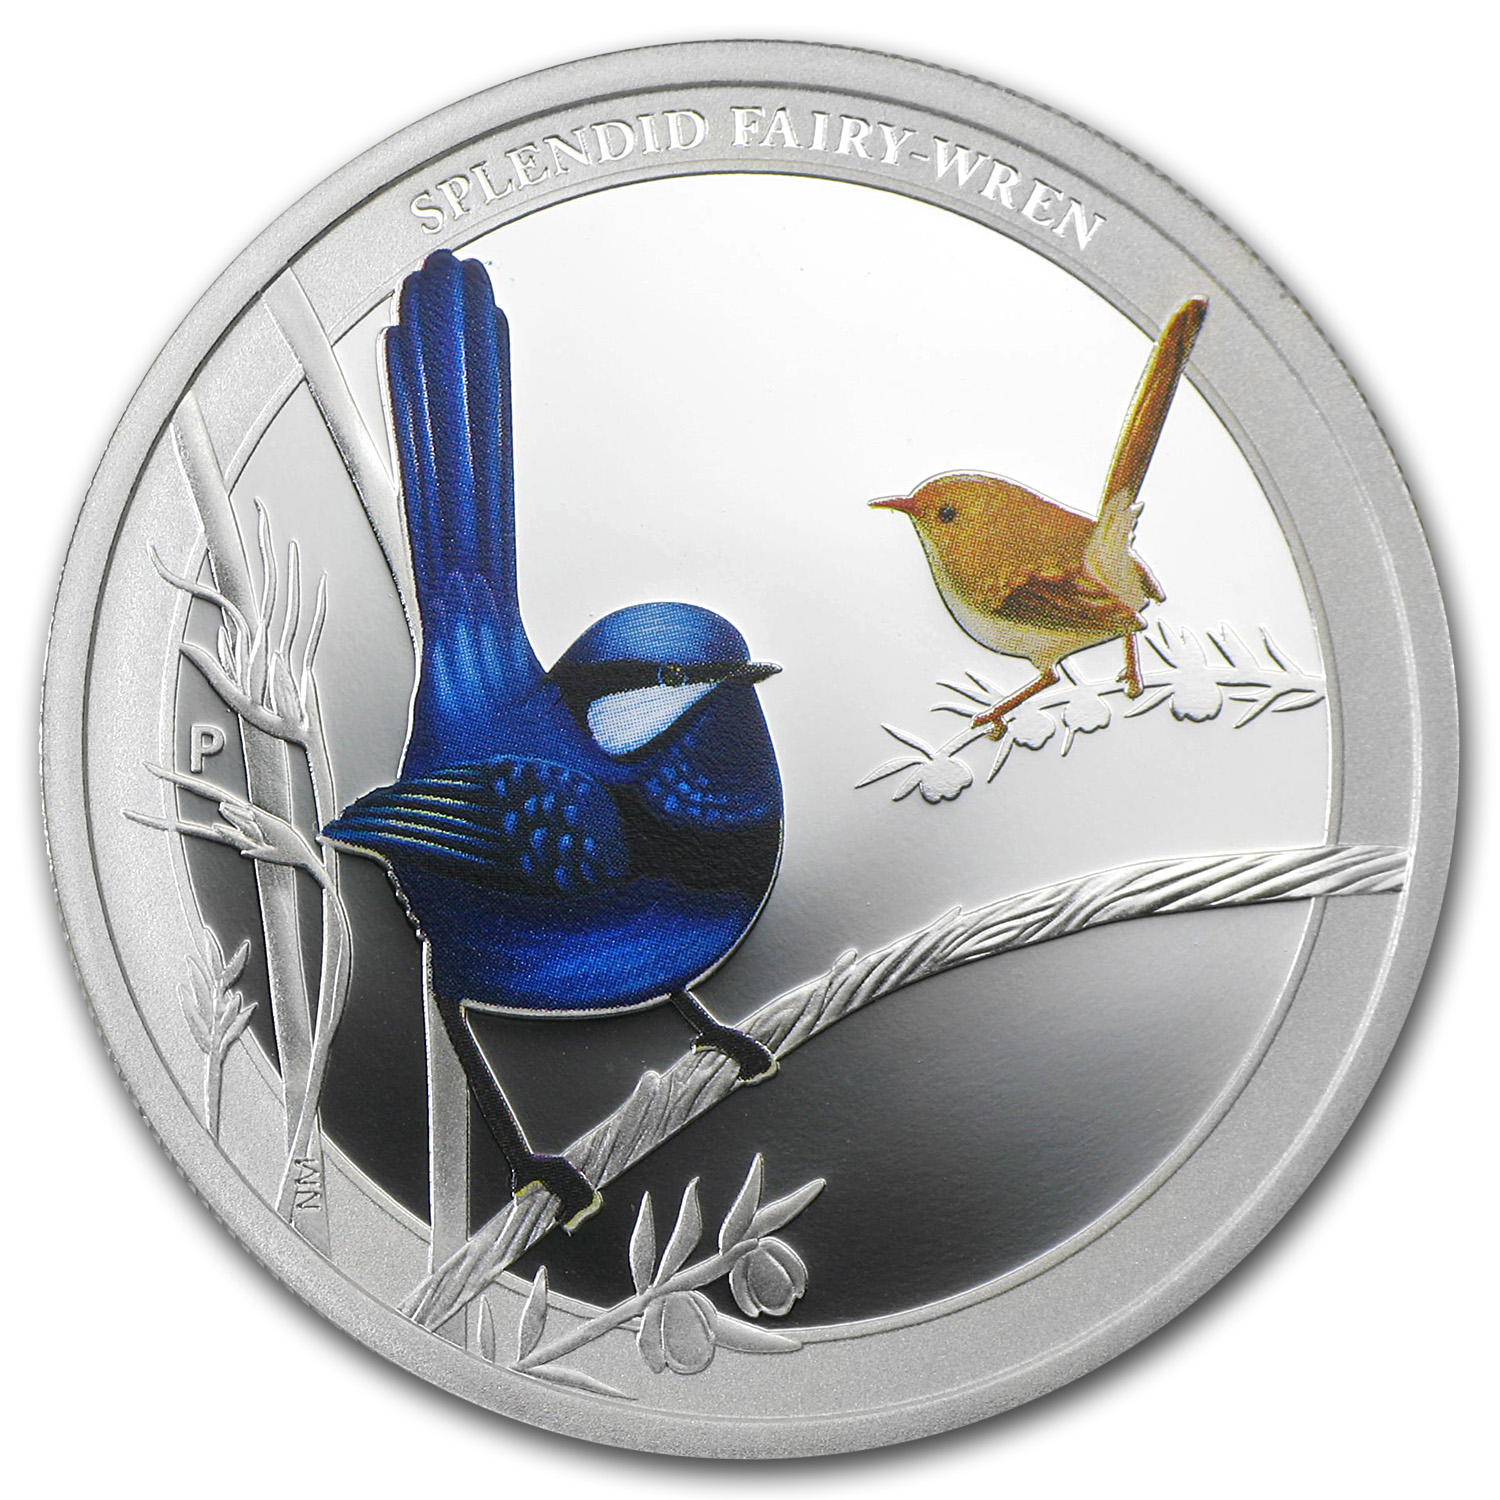 2013 Australia 1/2 oz Silver Splendid Fairy-Wren Proof